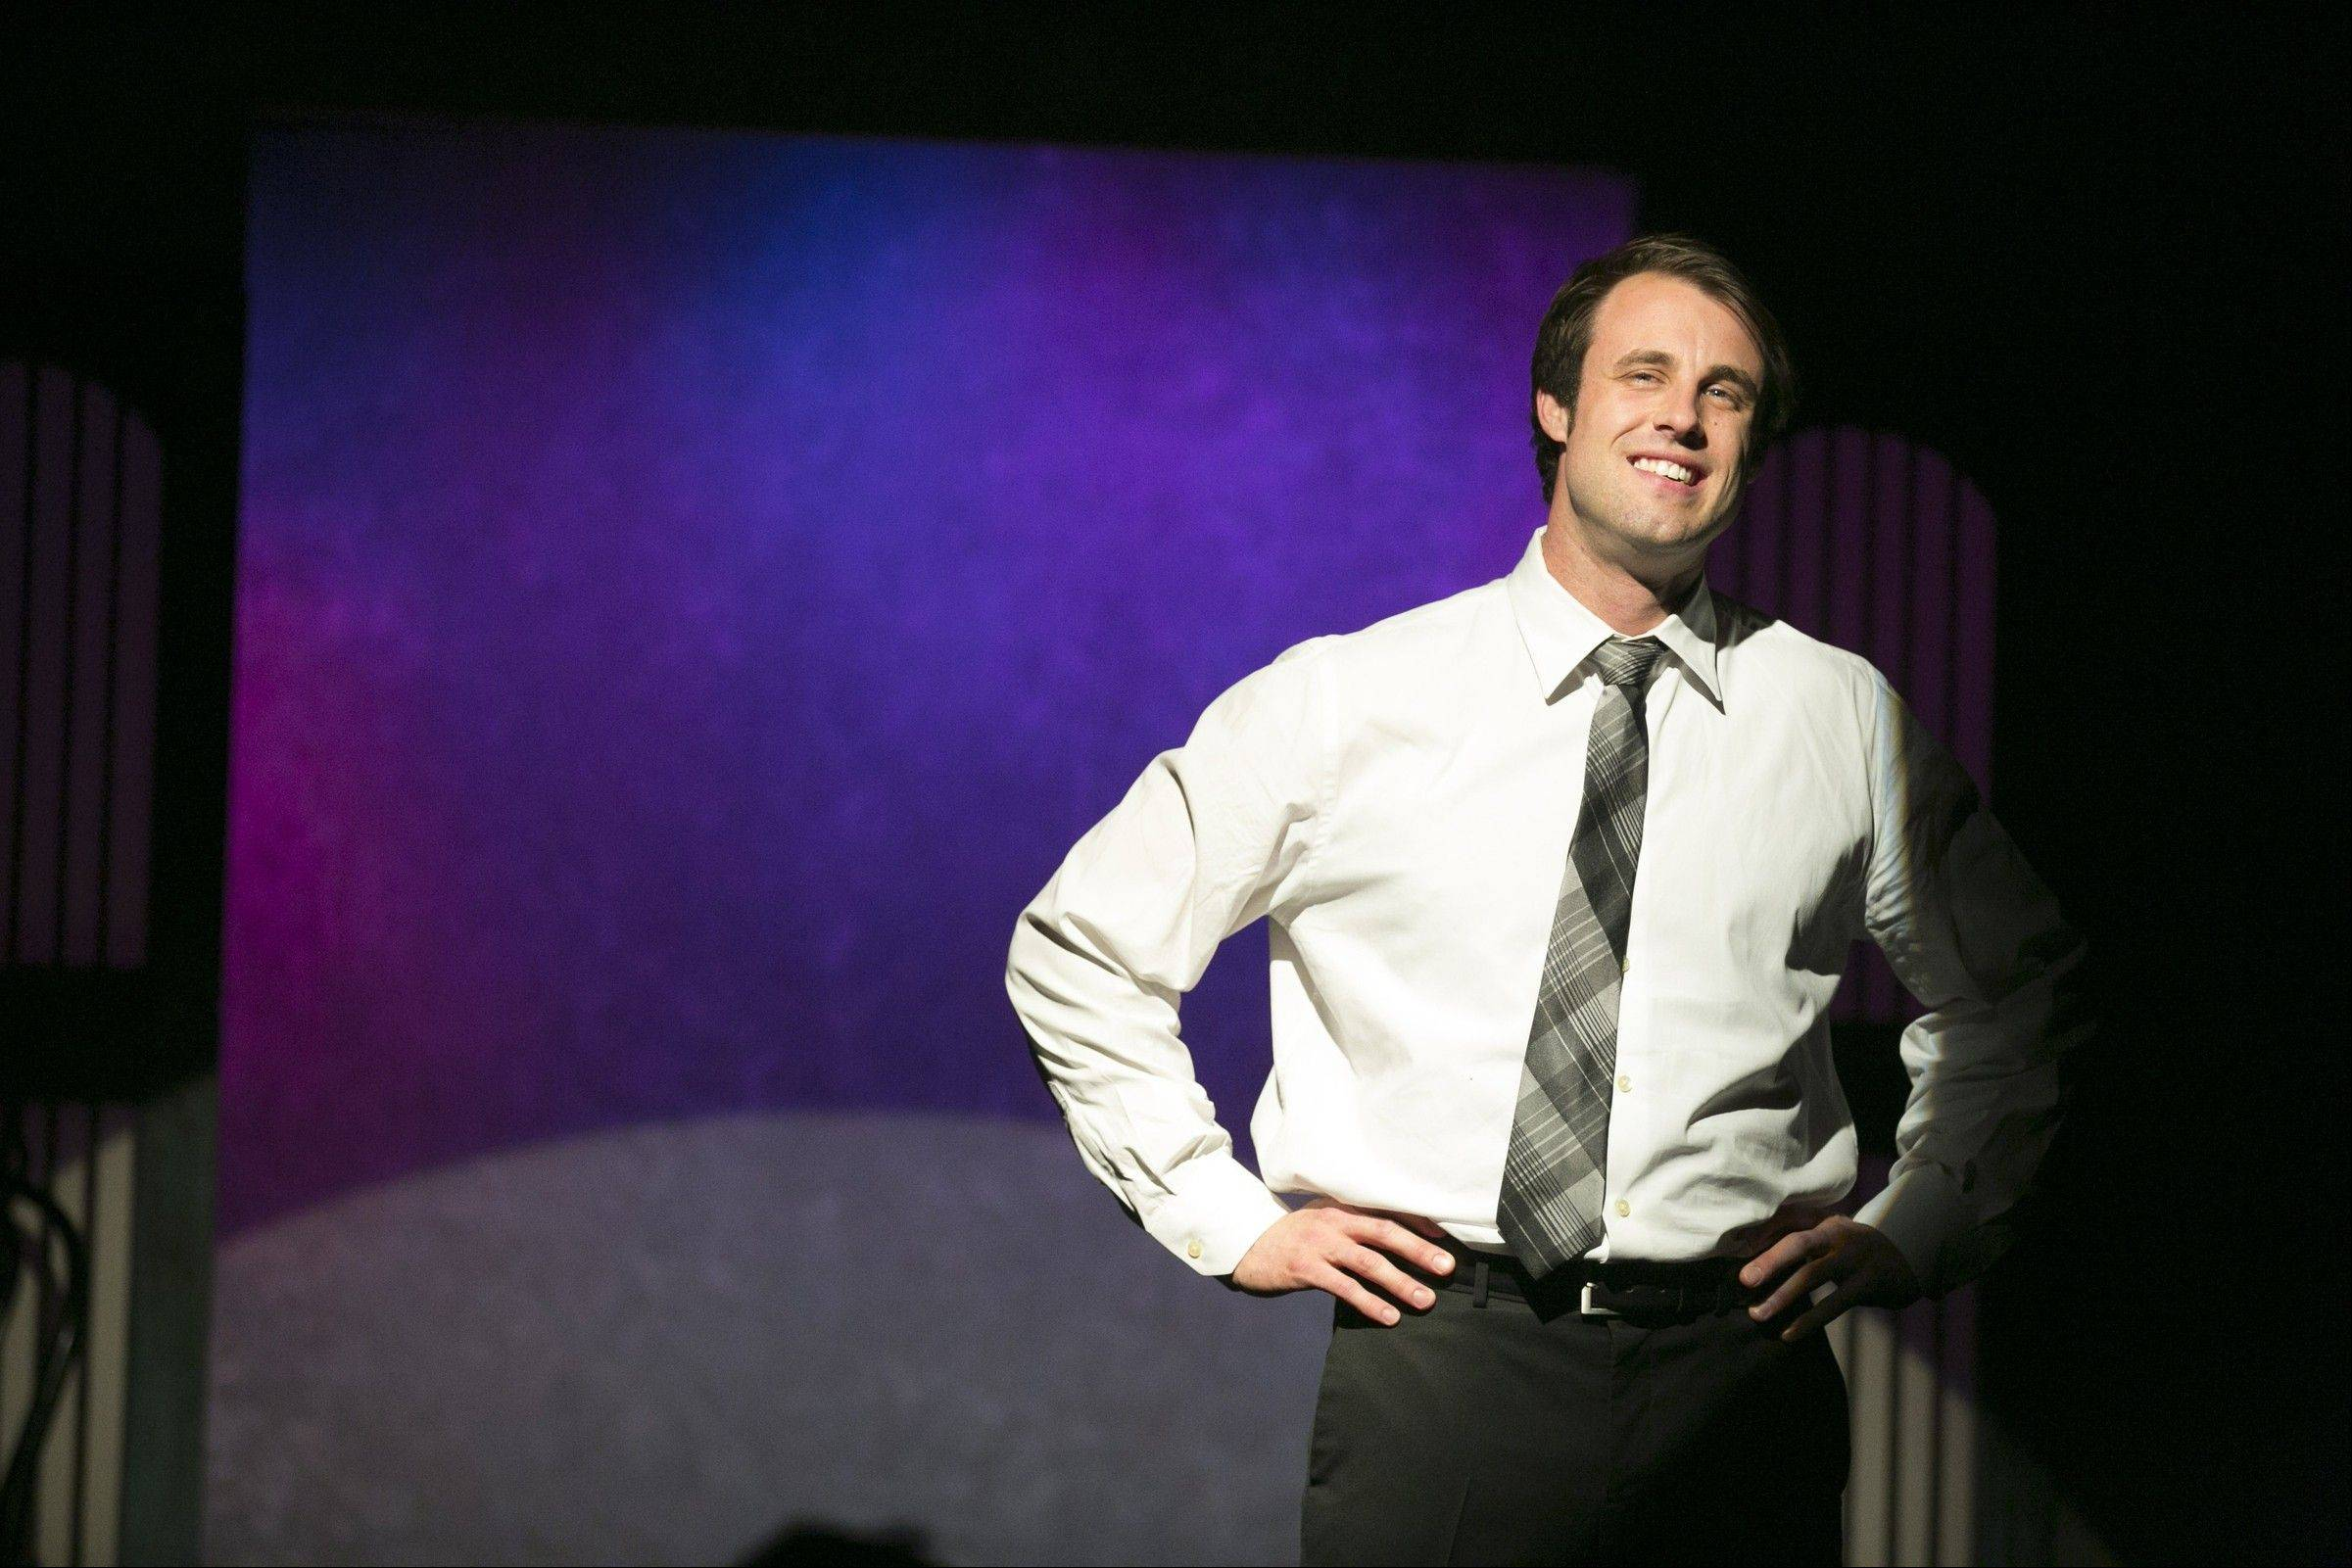 St. Charles native Chris Witaske calls being part of the current Second City show a dream come true.